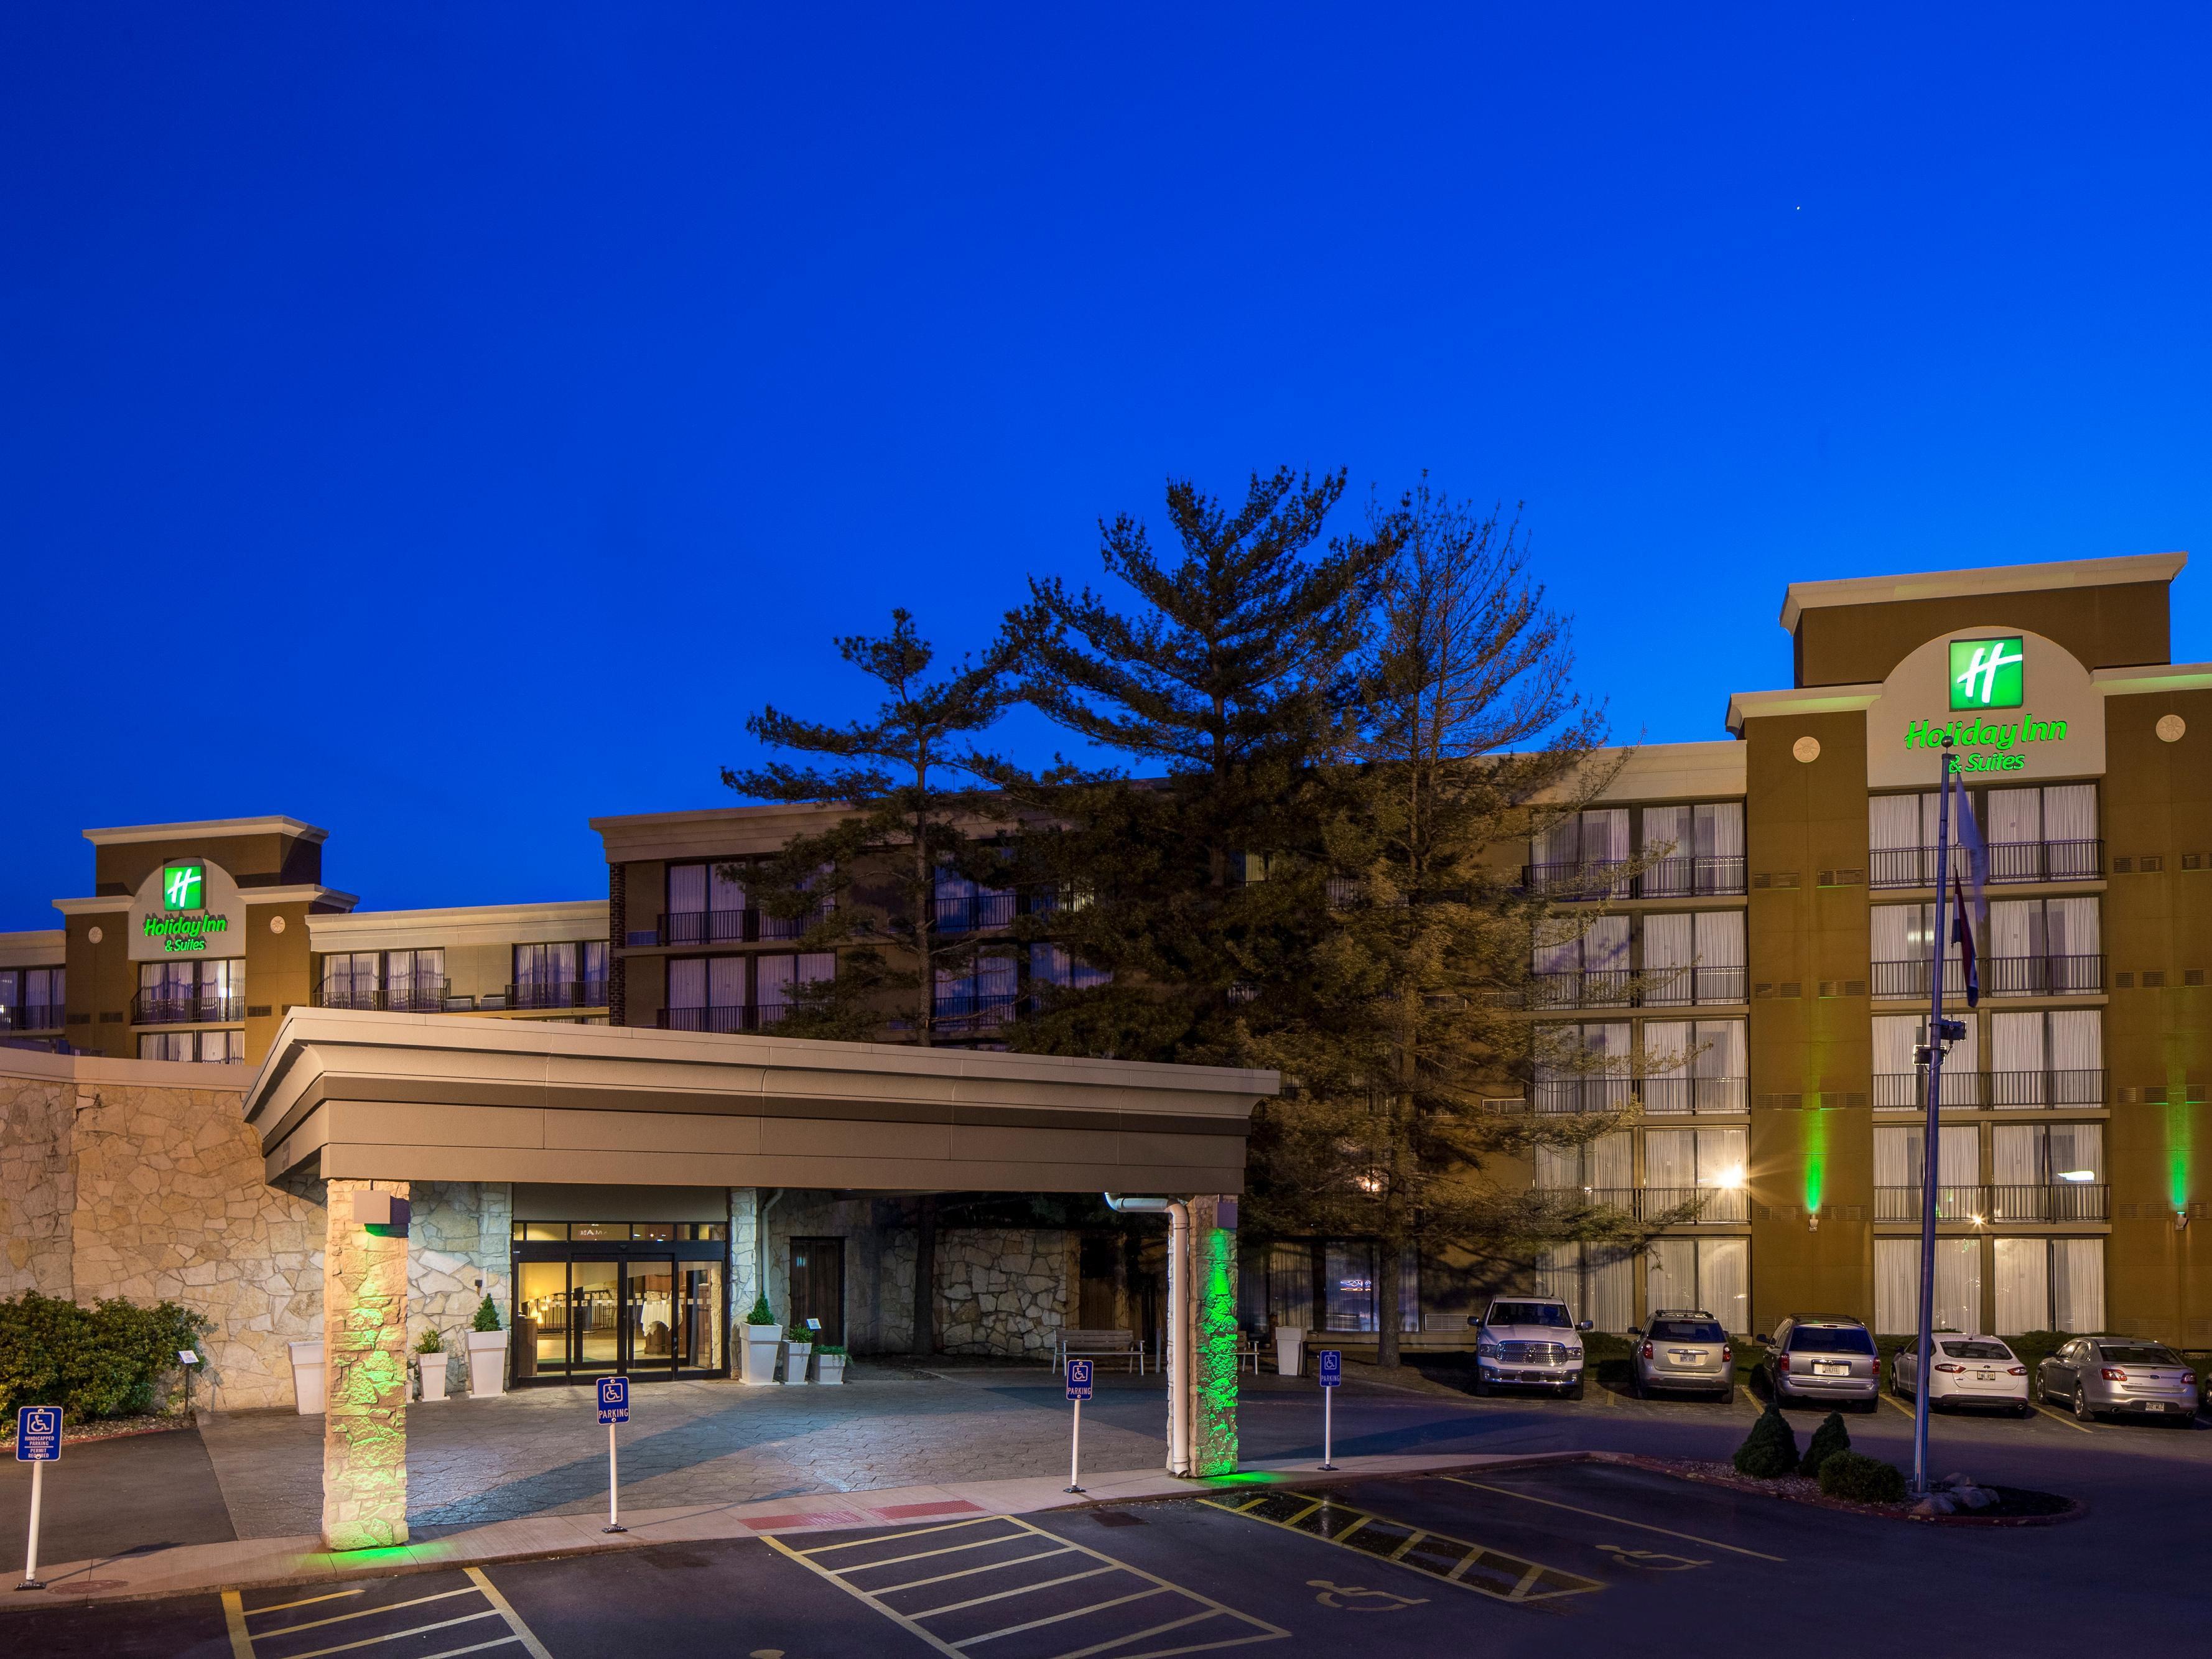 Welcome to the Holiday Inn, Des Moines, IA!